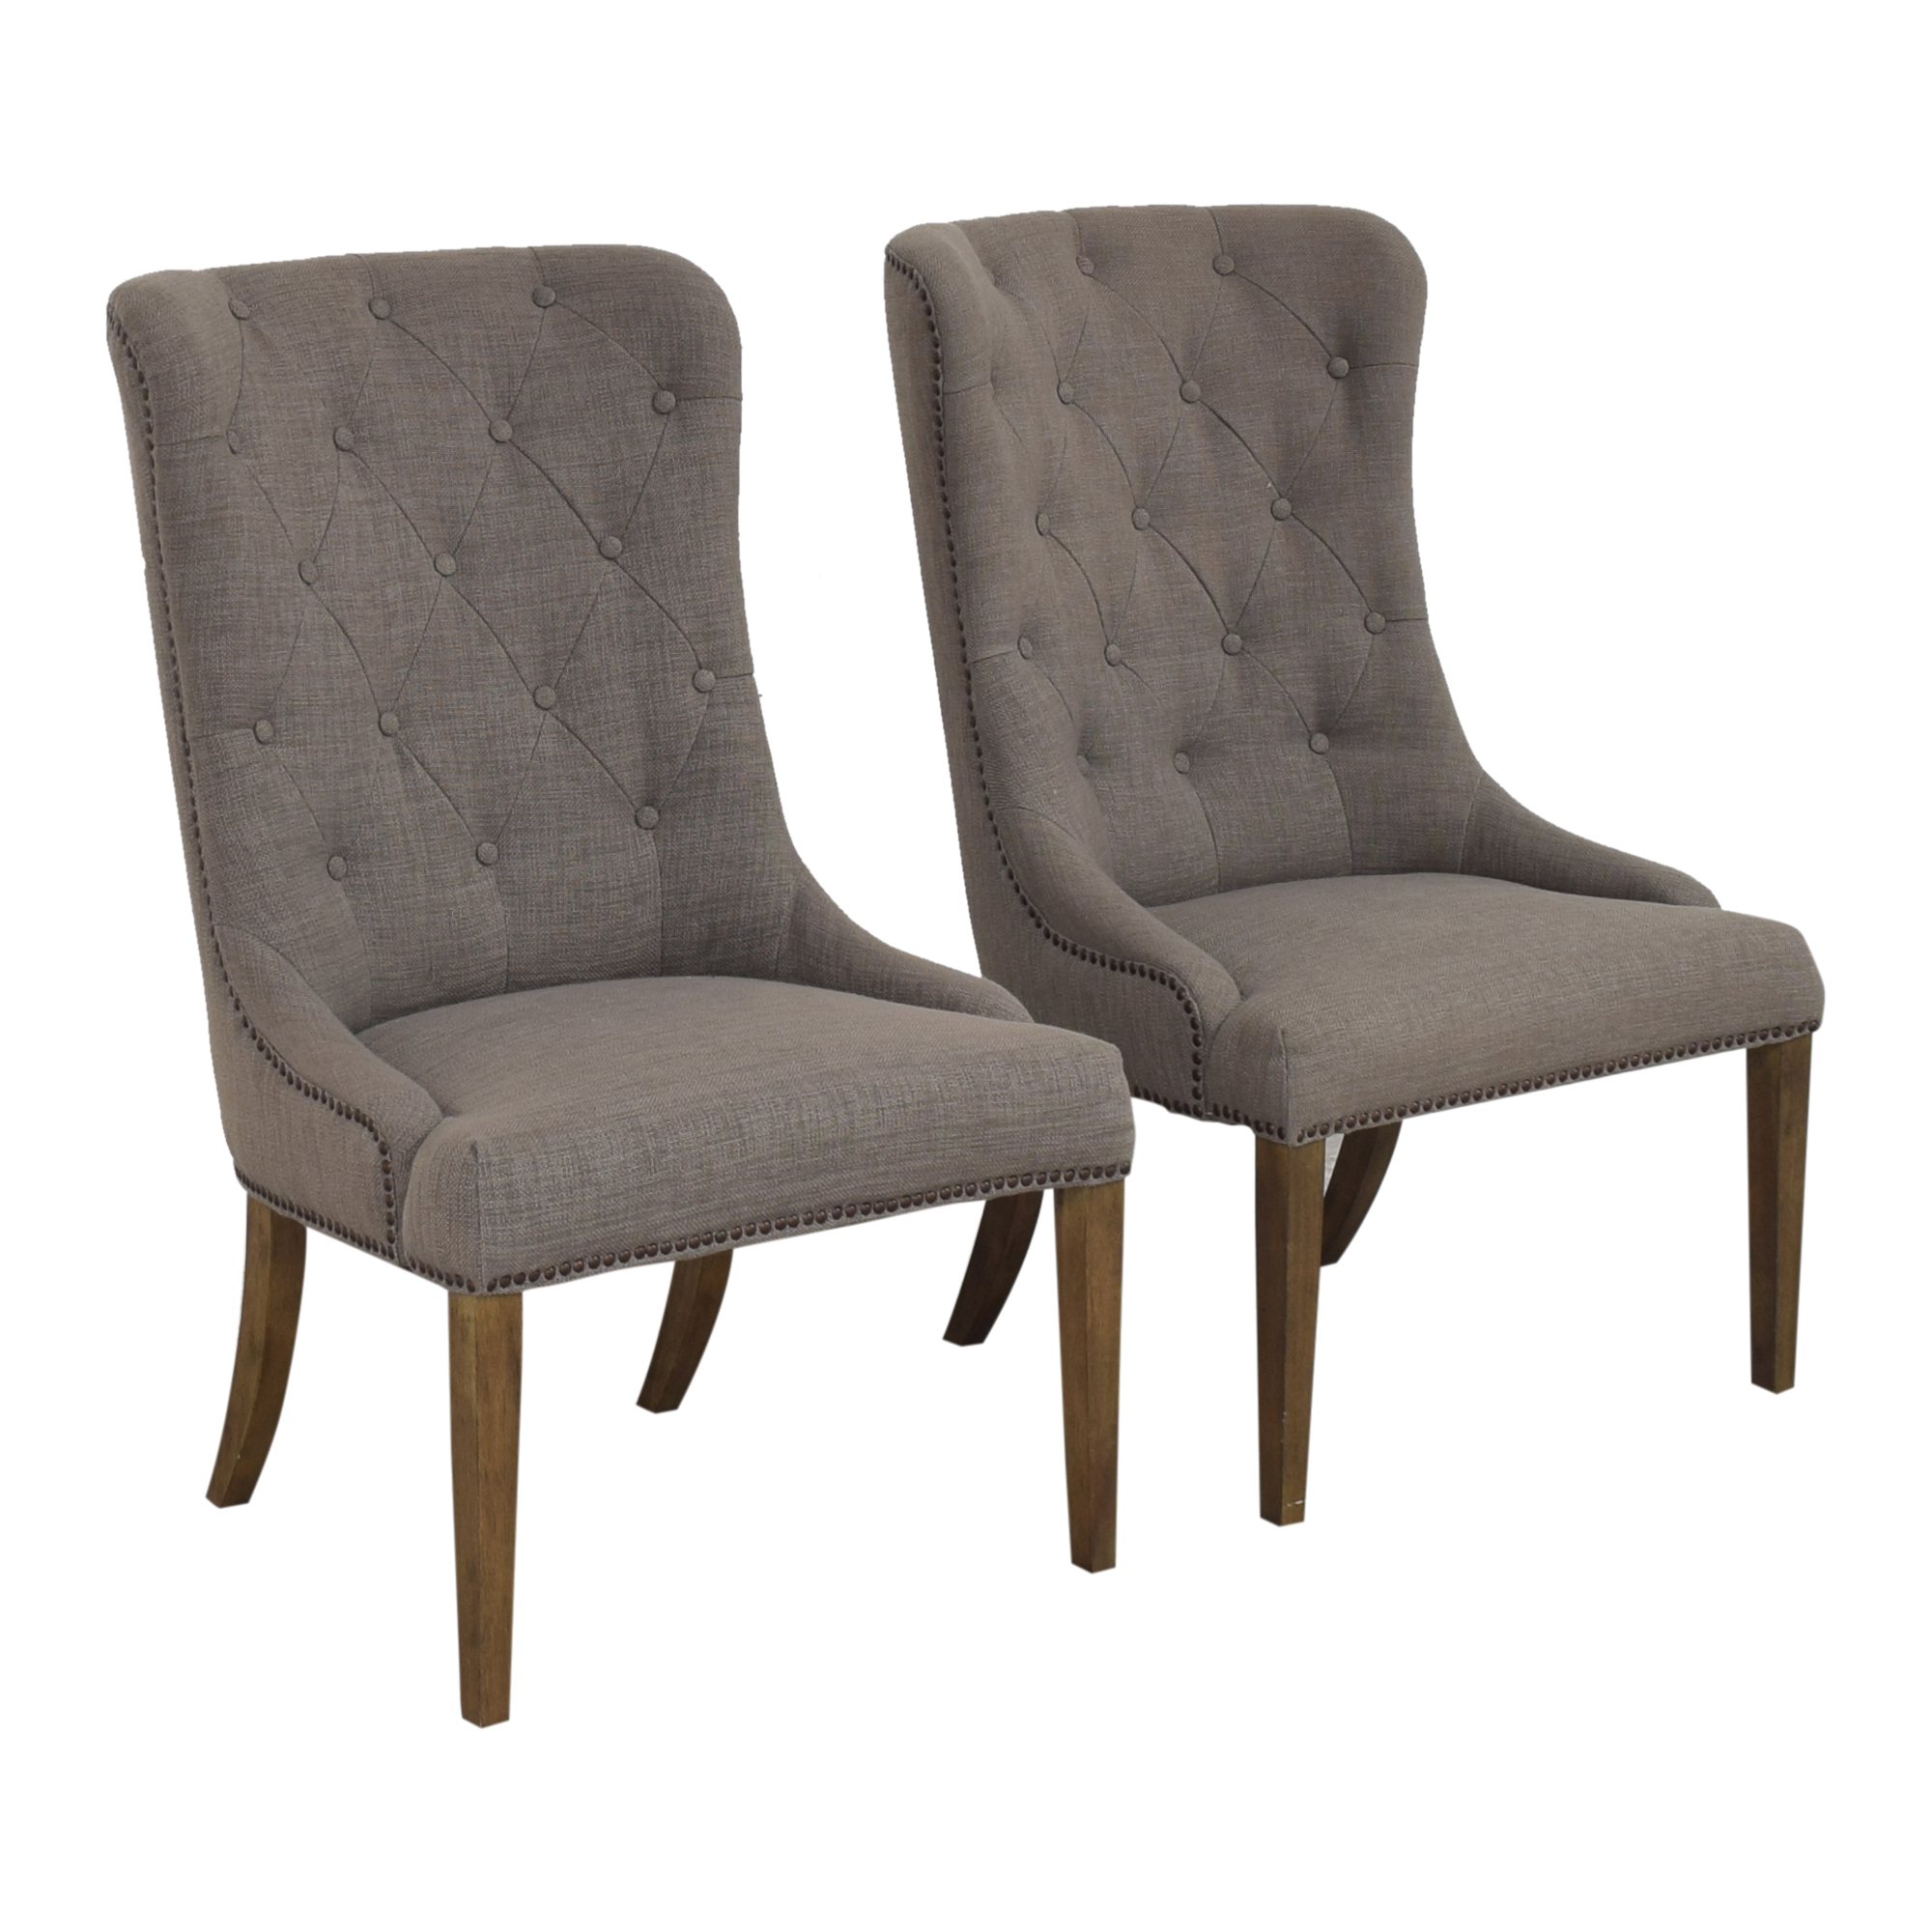 buy Four Hands Elouise Dining Chairs Four Hands Chairs